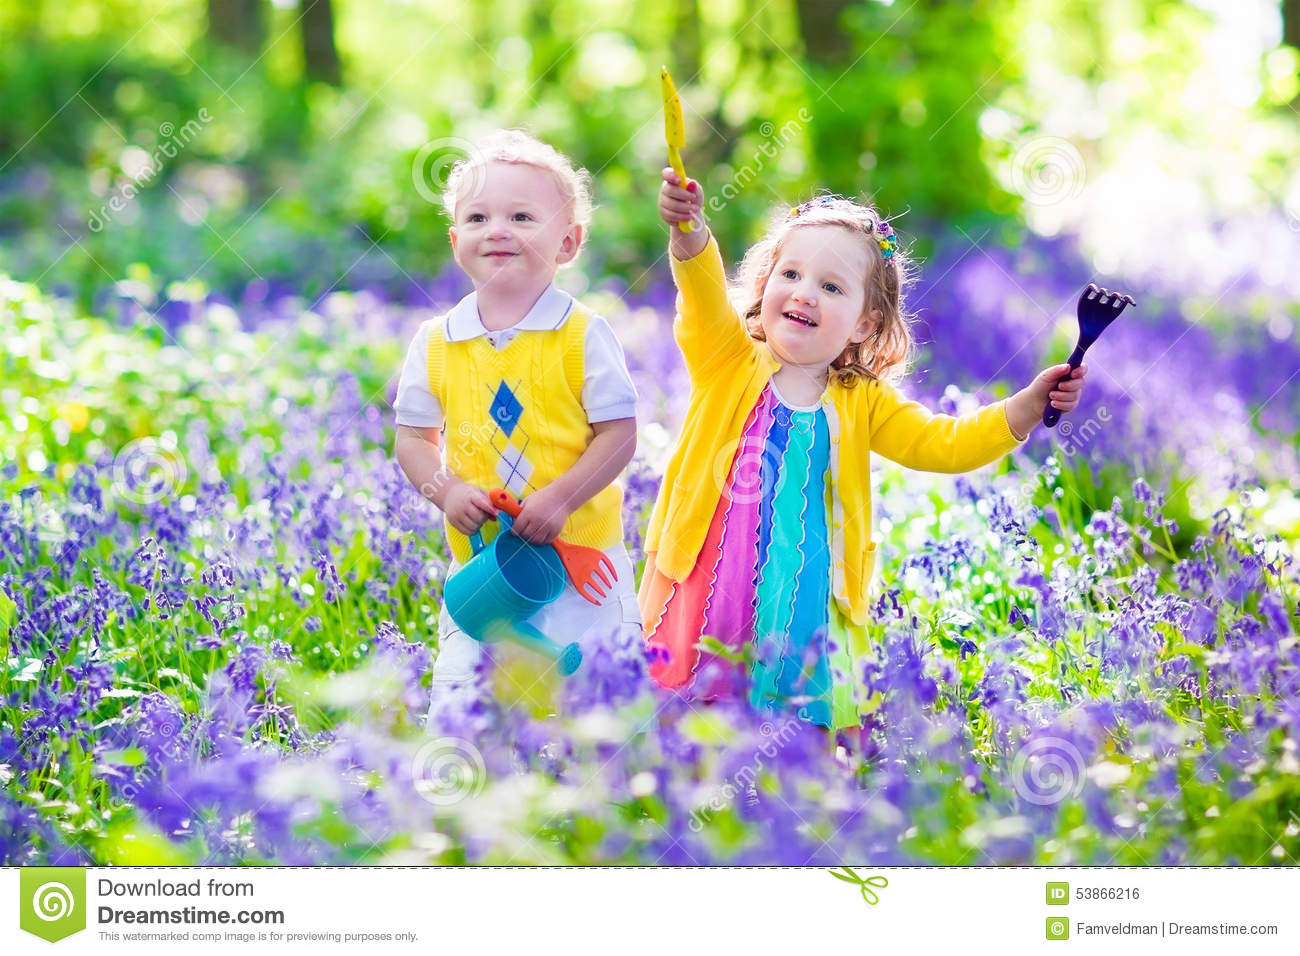 Kids in a garden with bluebell flowers stock photo image for Un jardin de fleurs